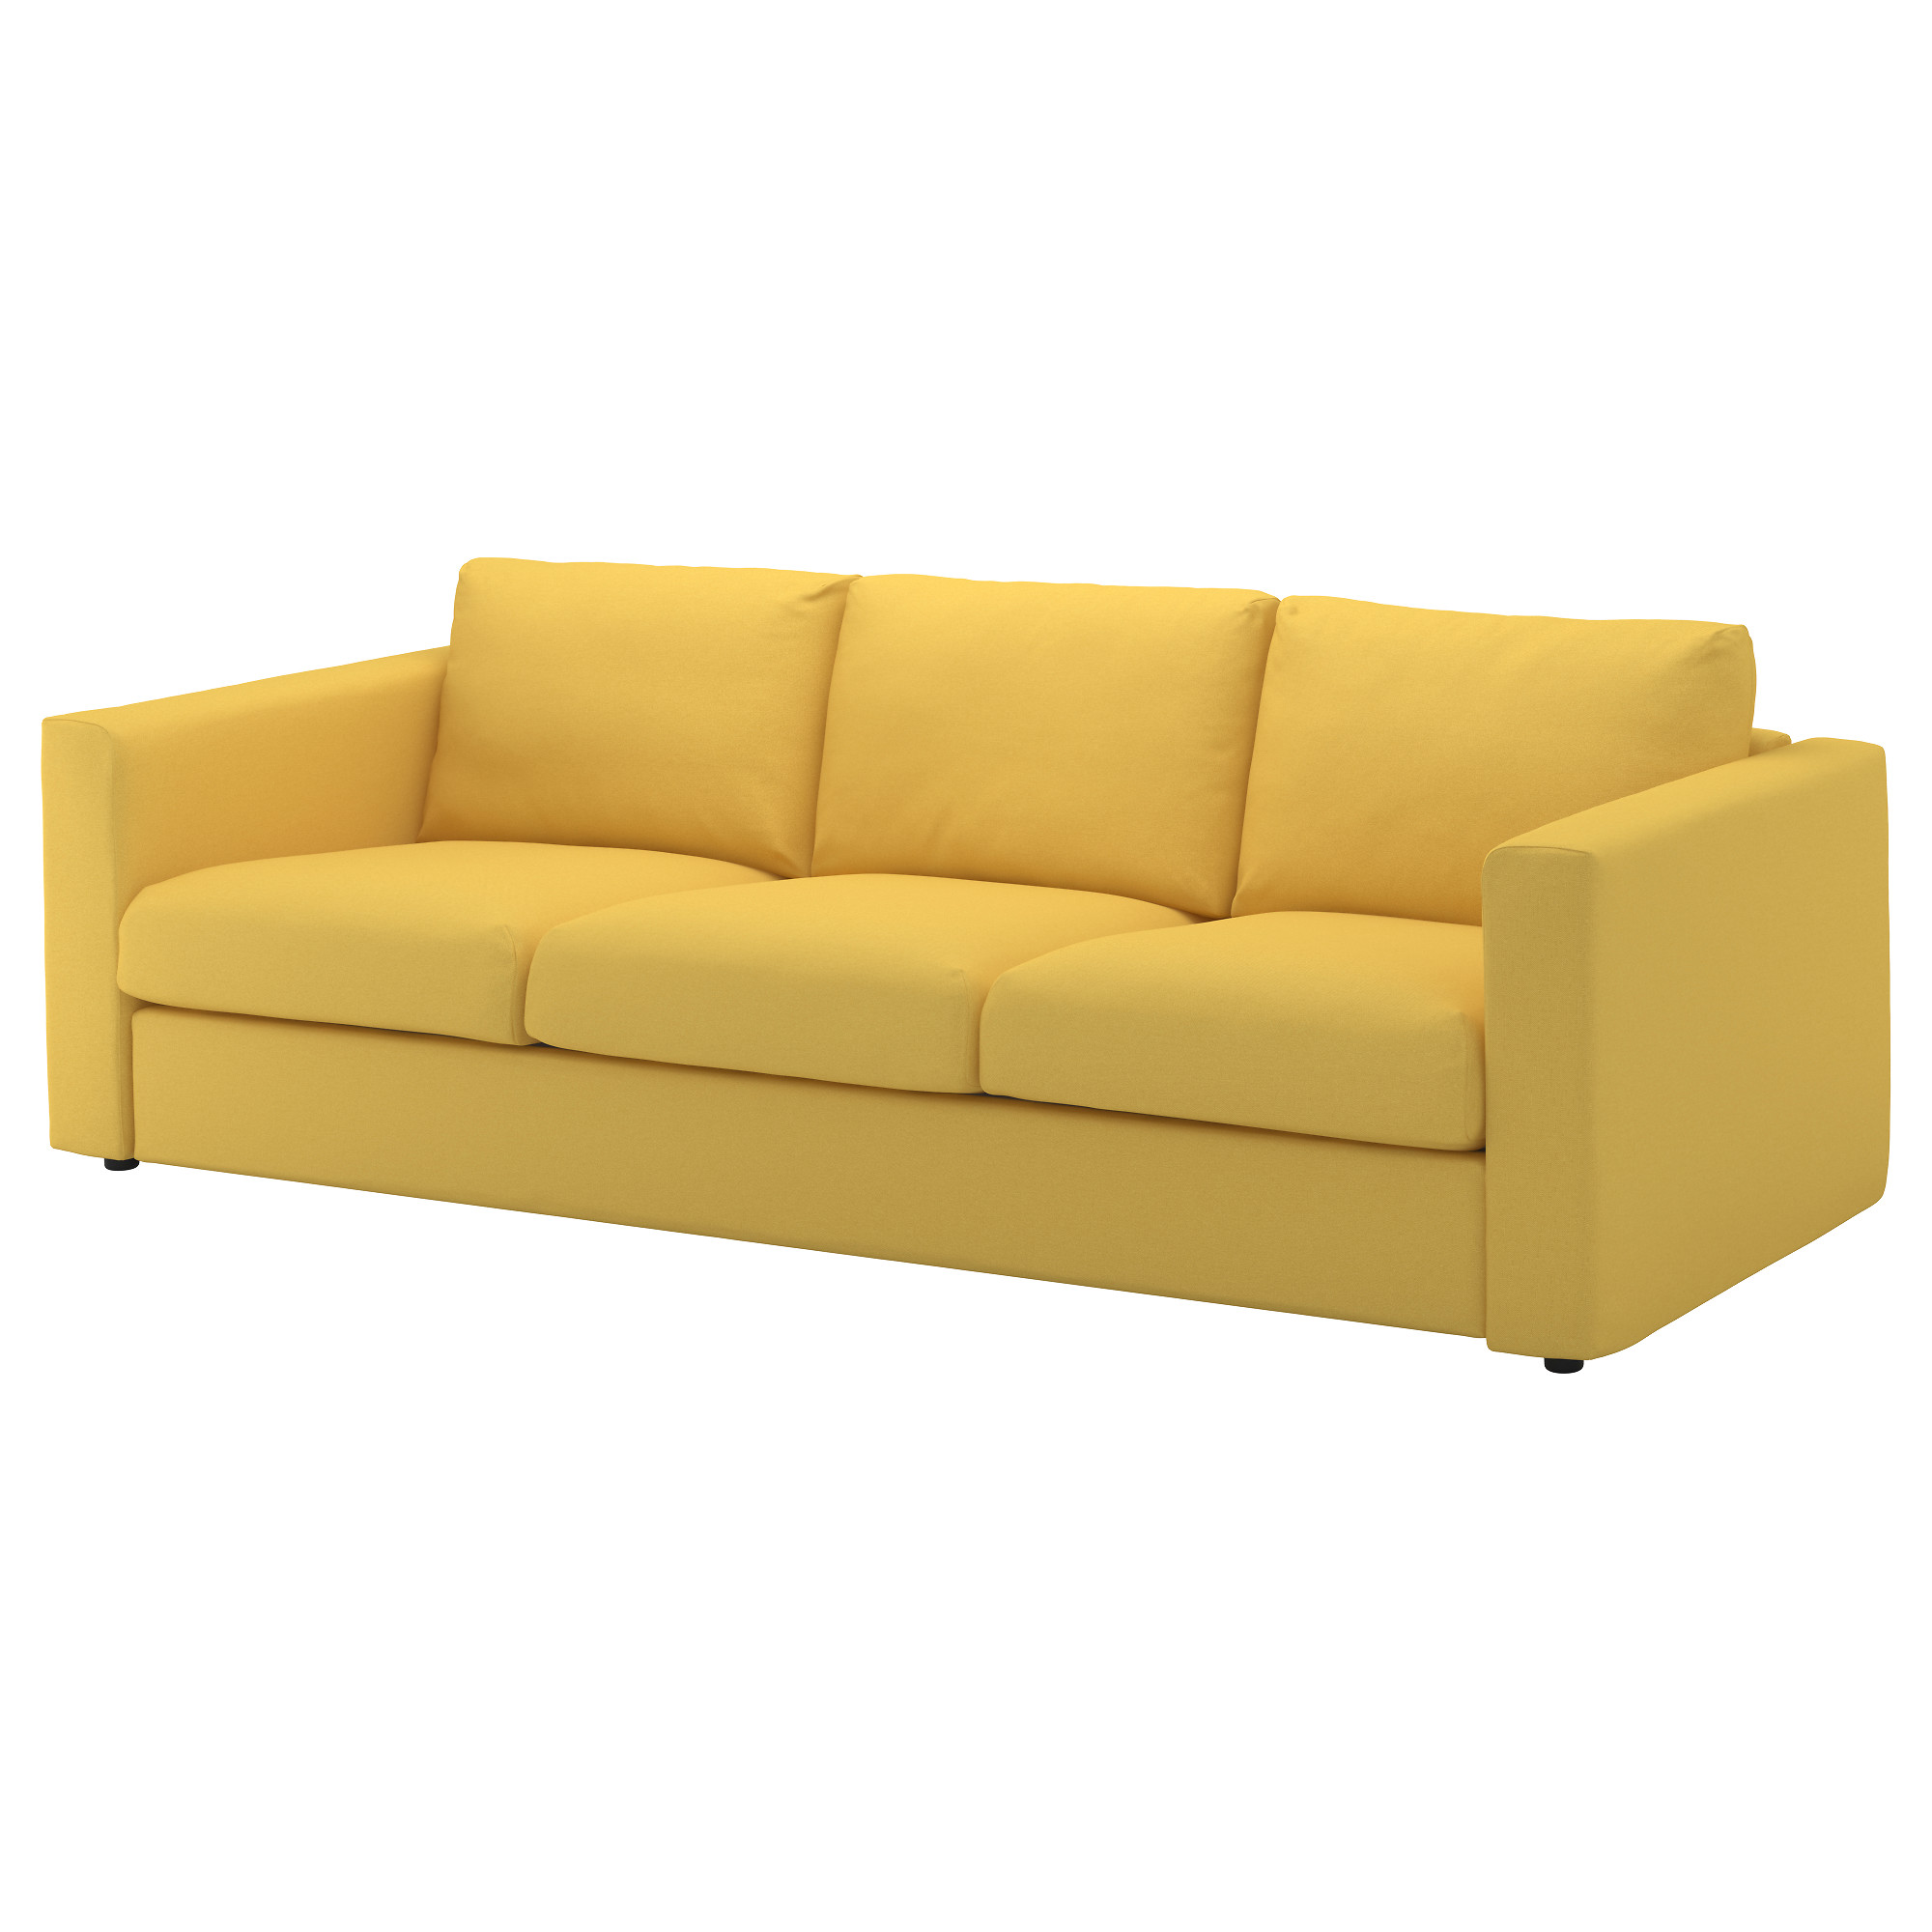 beautiful elegant armless furniture small with for and loveseats loveseat comforter comfortable home design